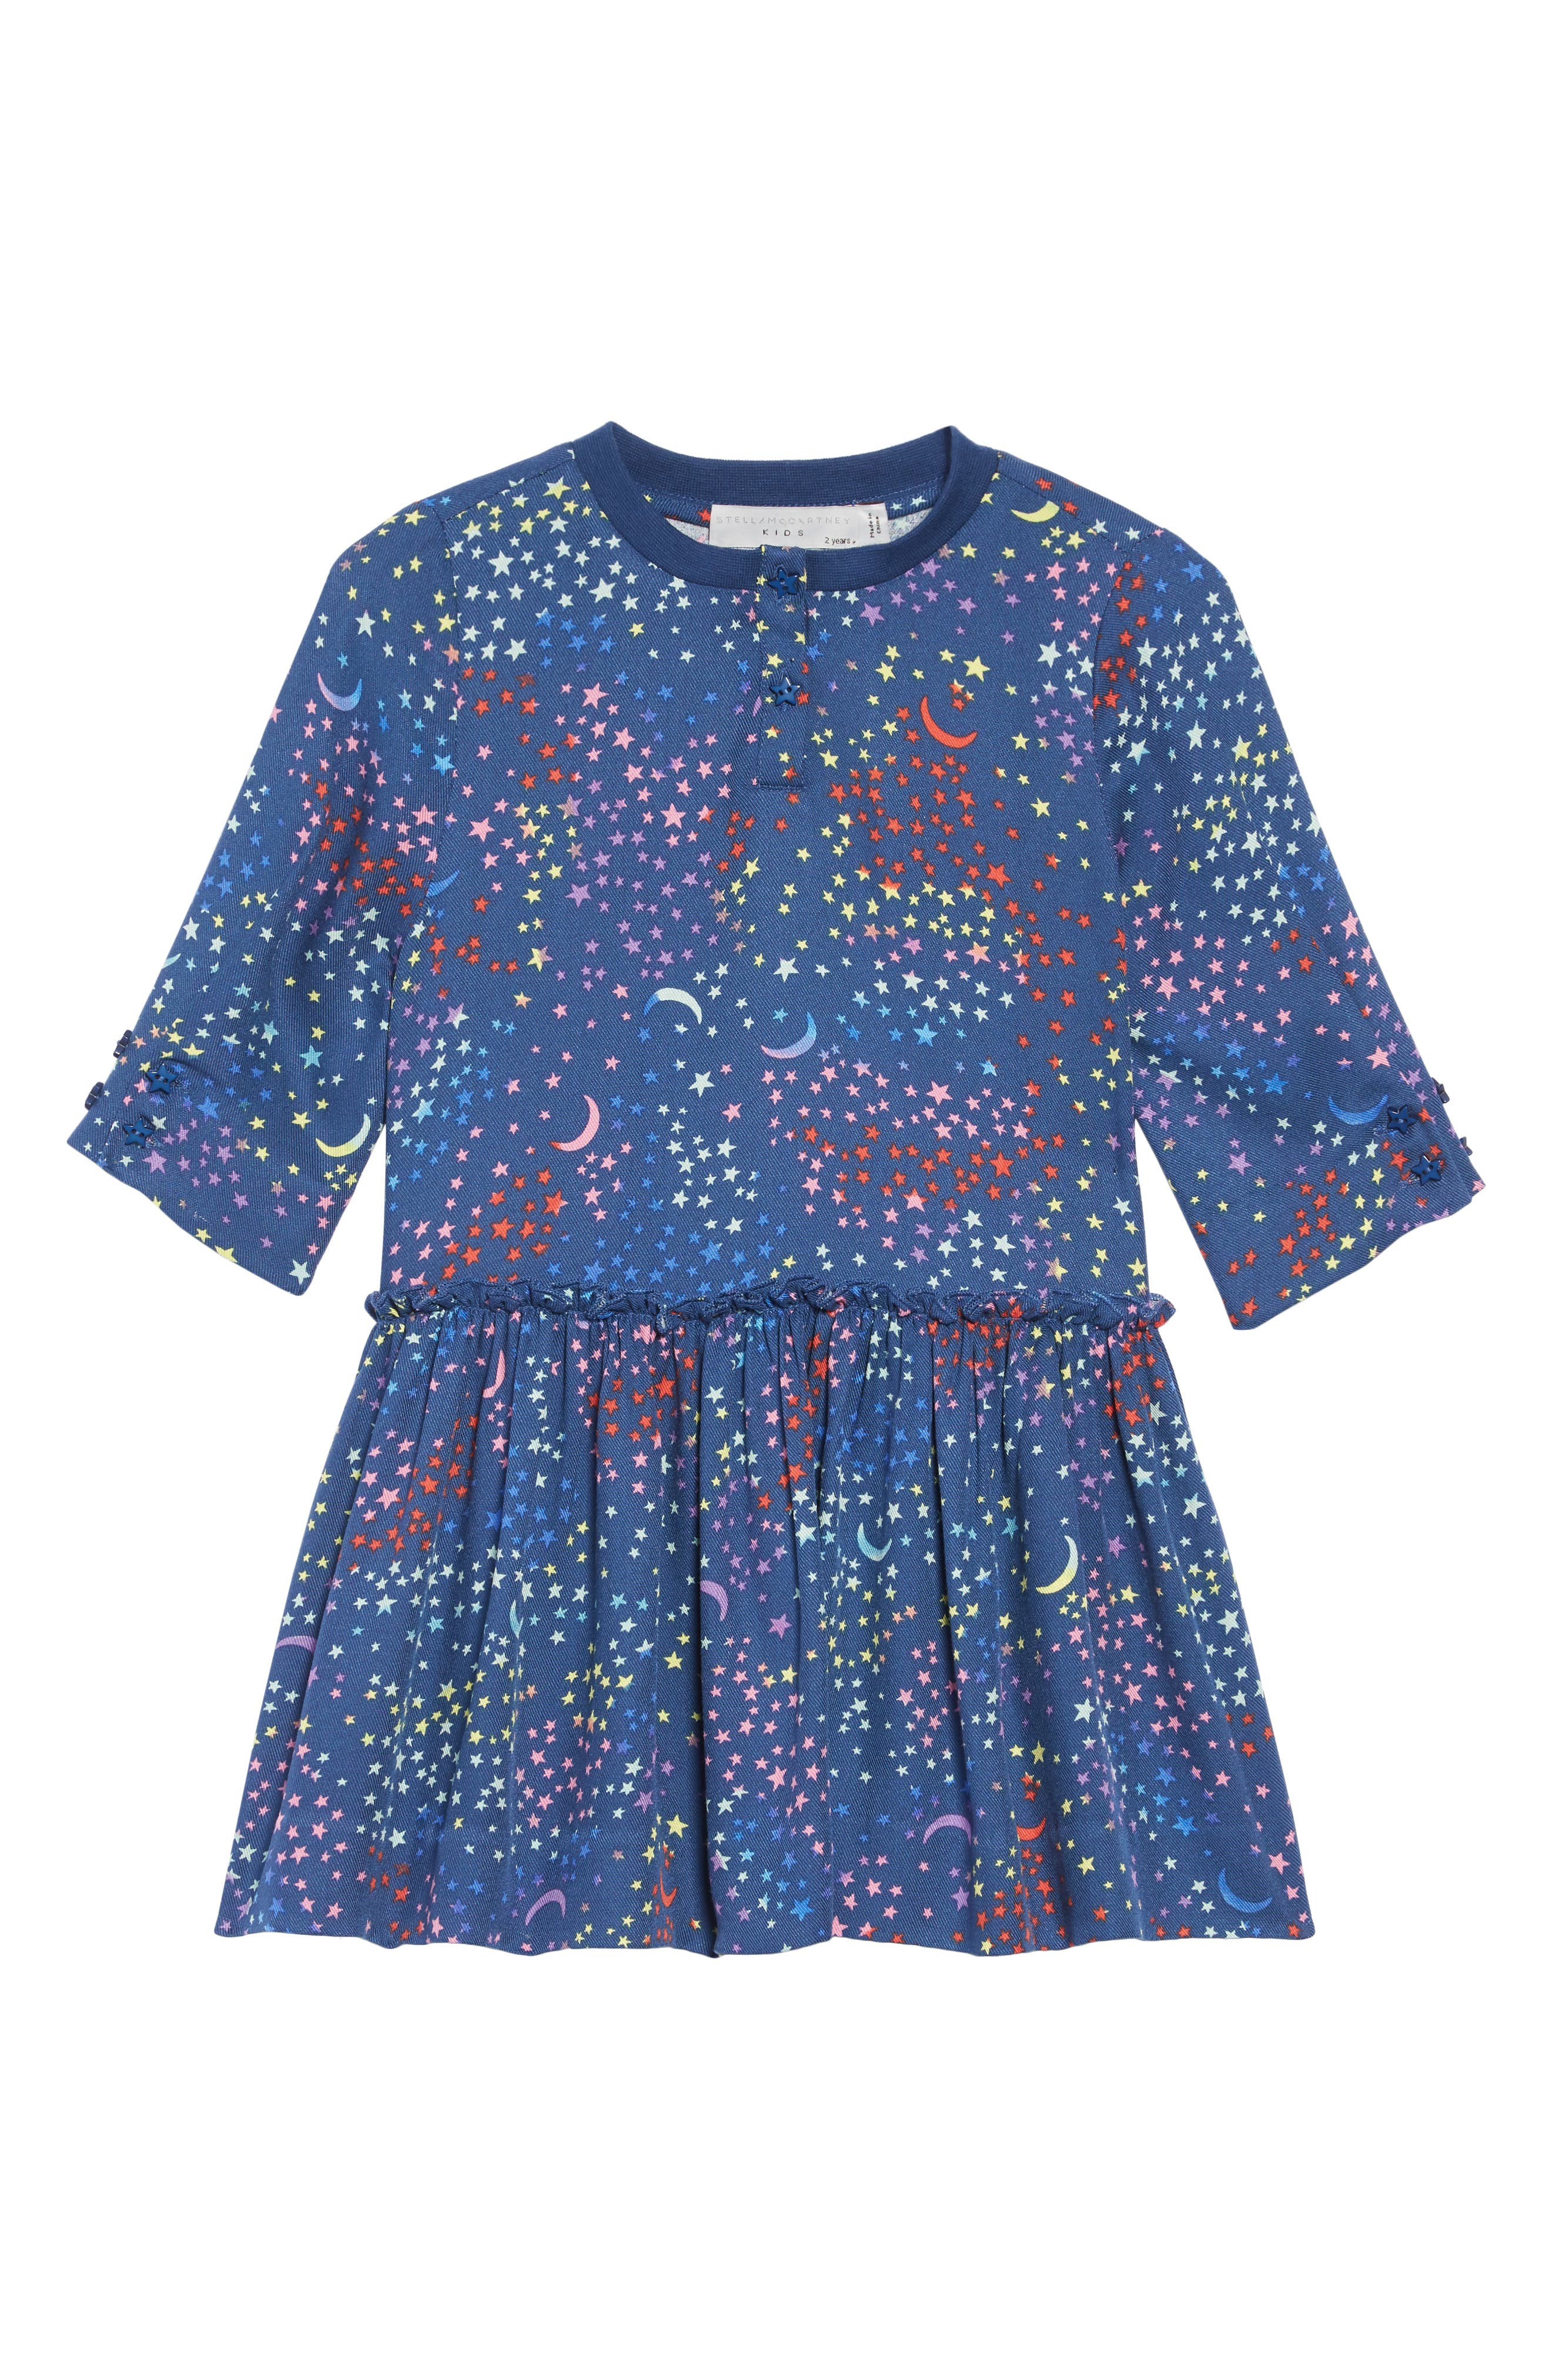 Stella McCartney Kiwi Star Print Dress,                             Main thumbnail 1, color,                             BLUE